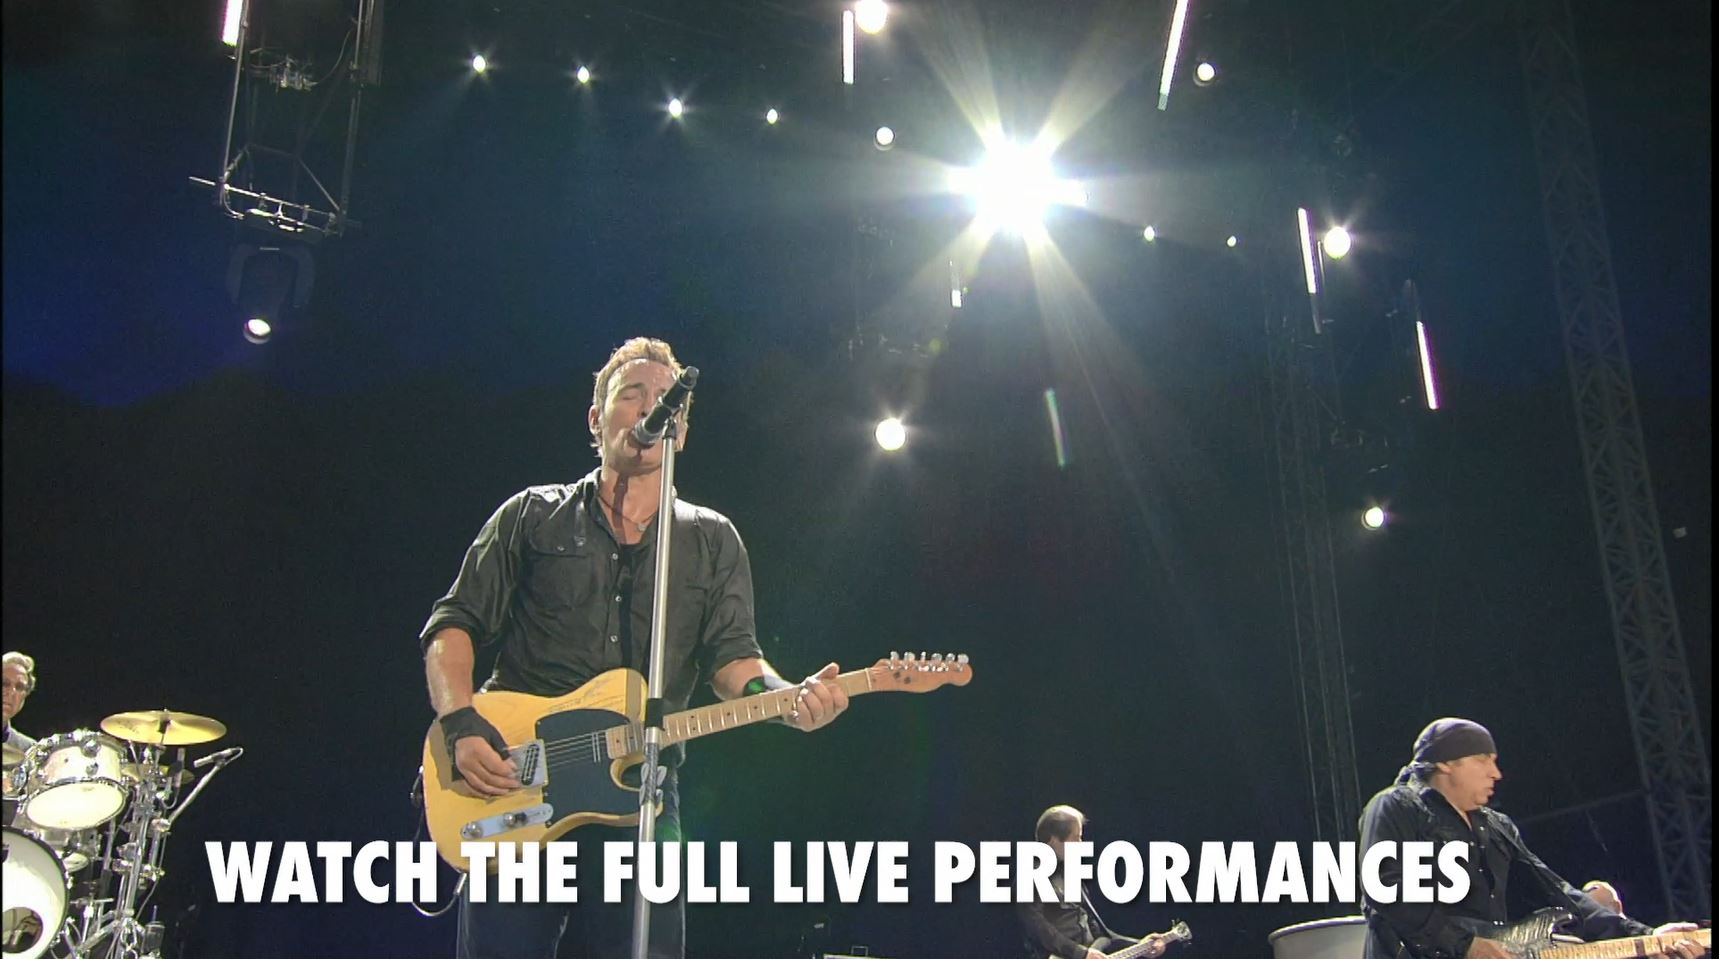 Watch The Full Live Performances